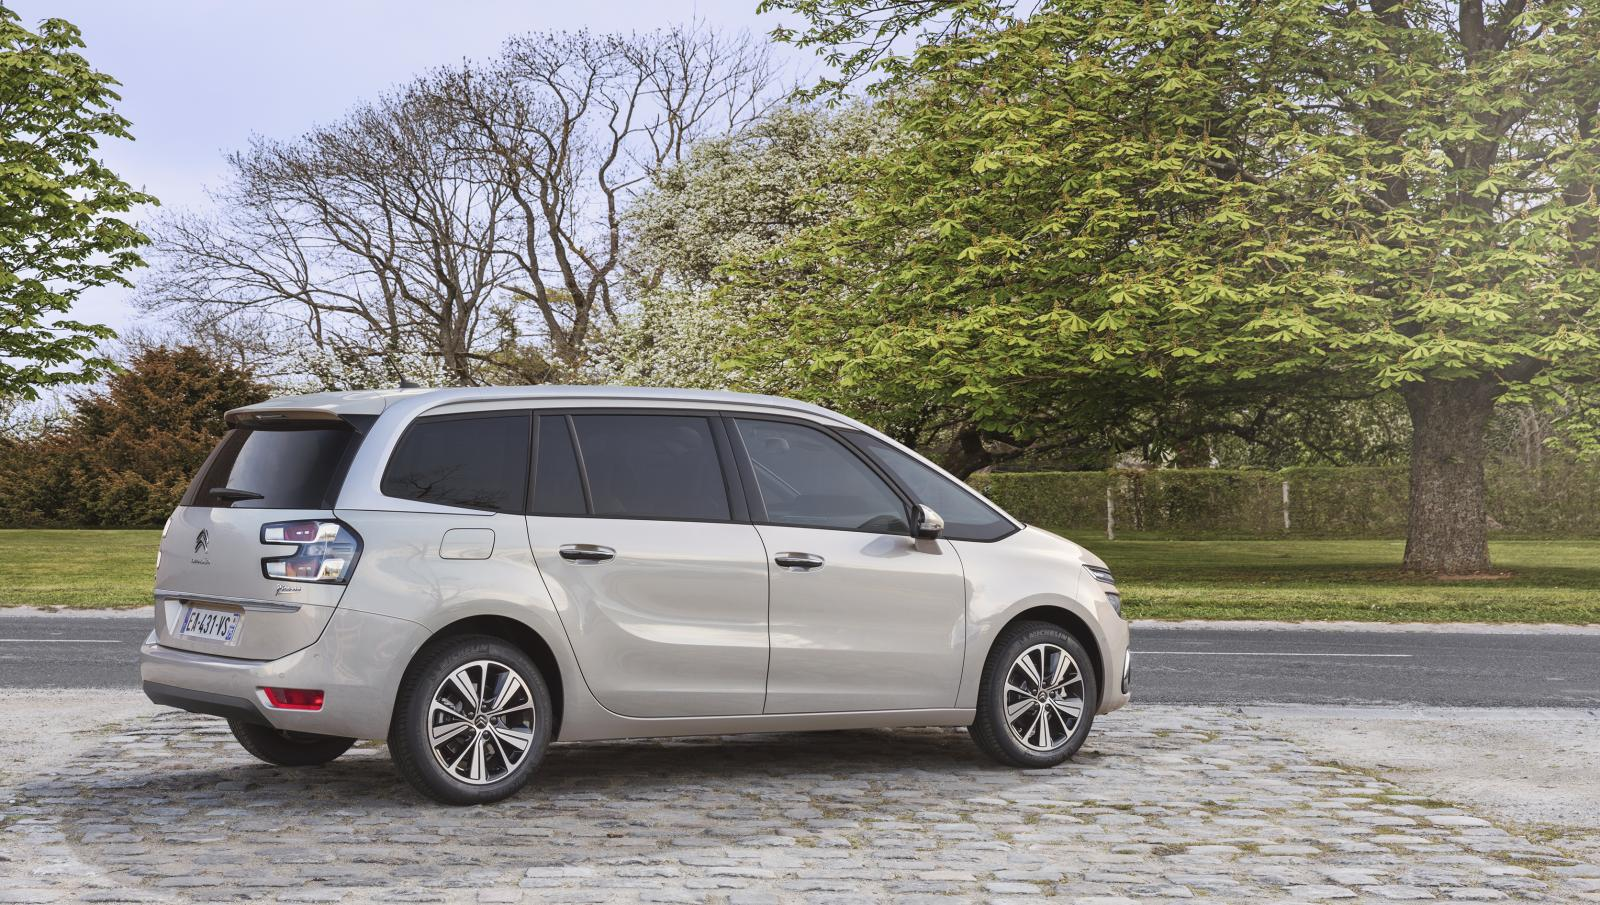 Grand C4 Picasso Shine 2016 ¾ bakfra